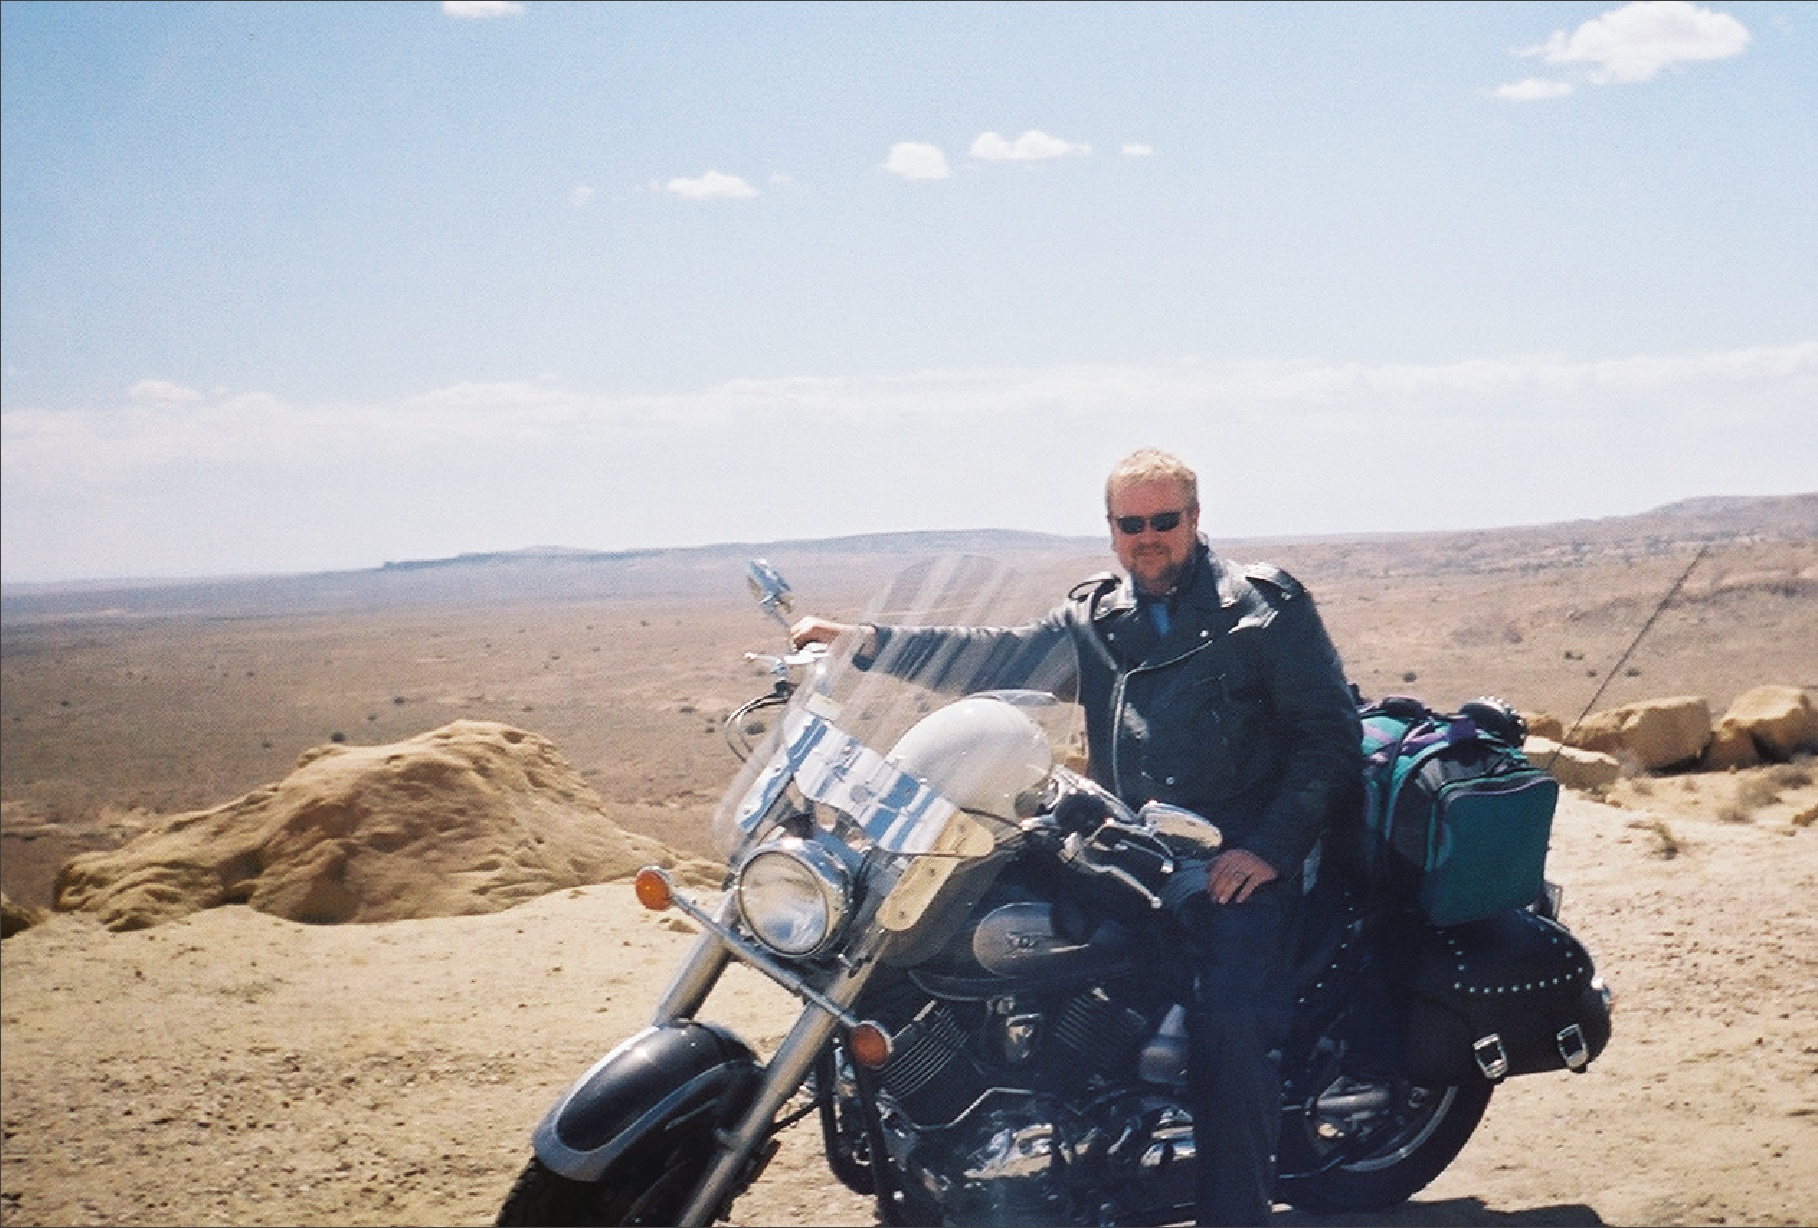 Russ at stop on Hopi Lands